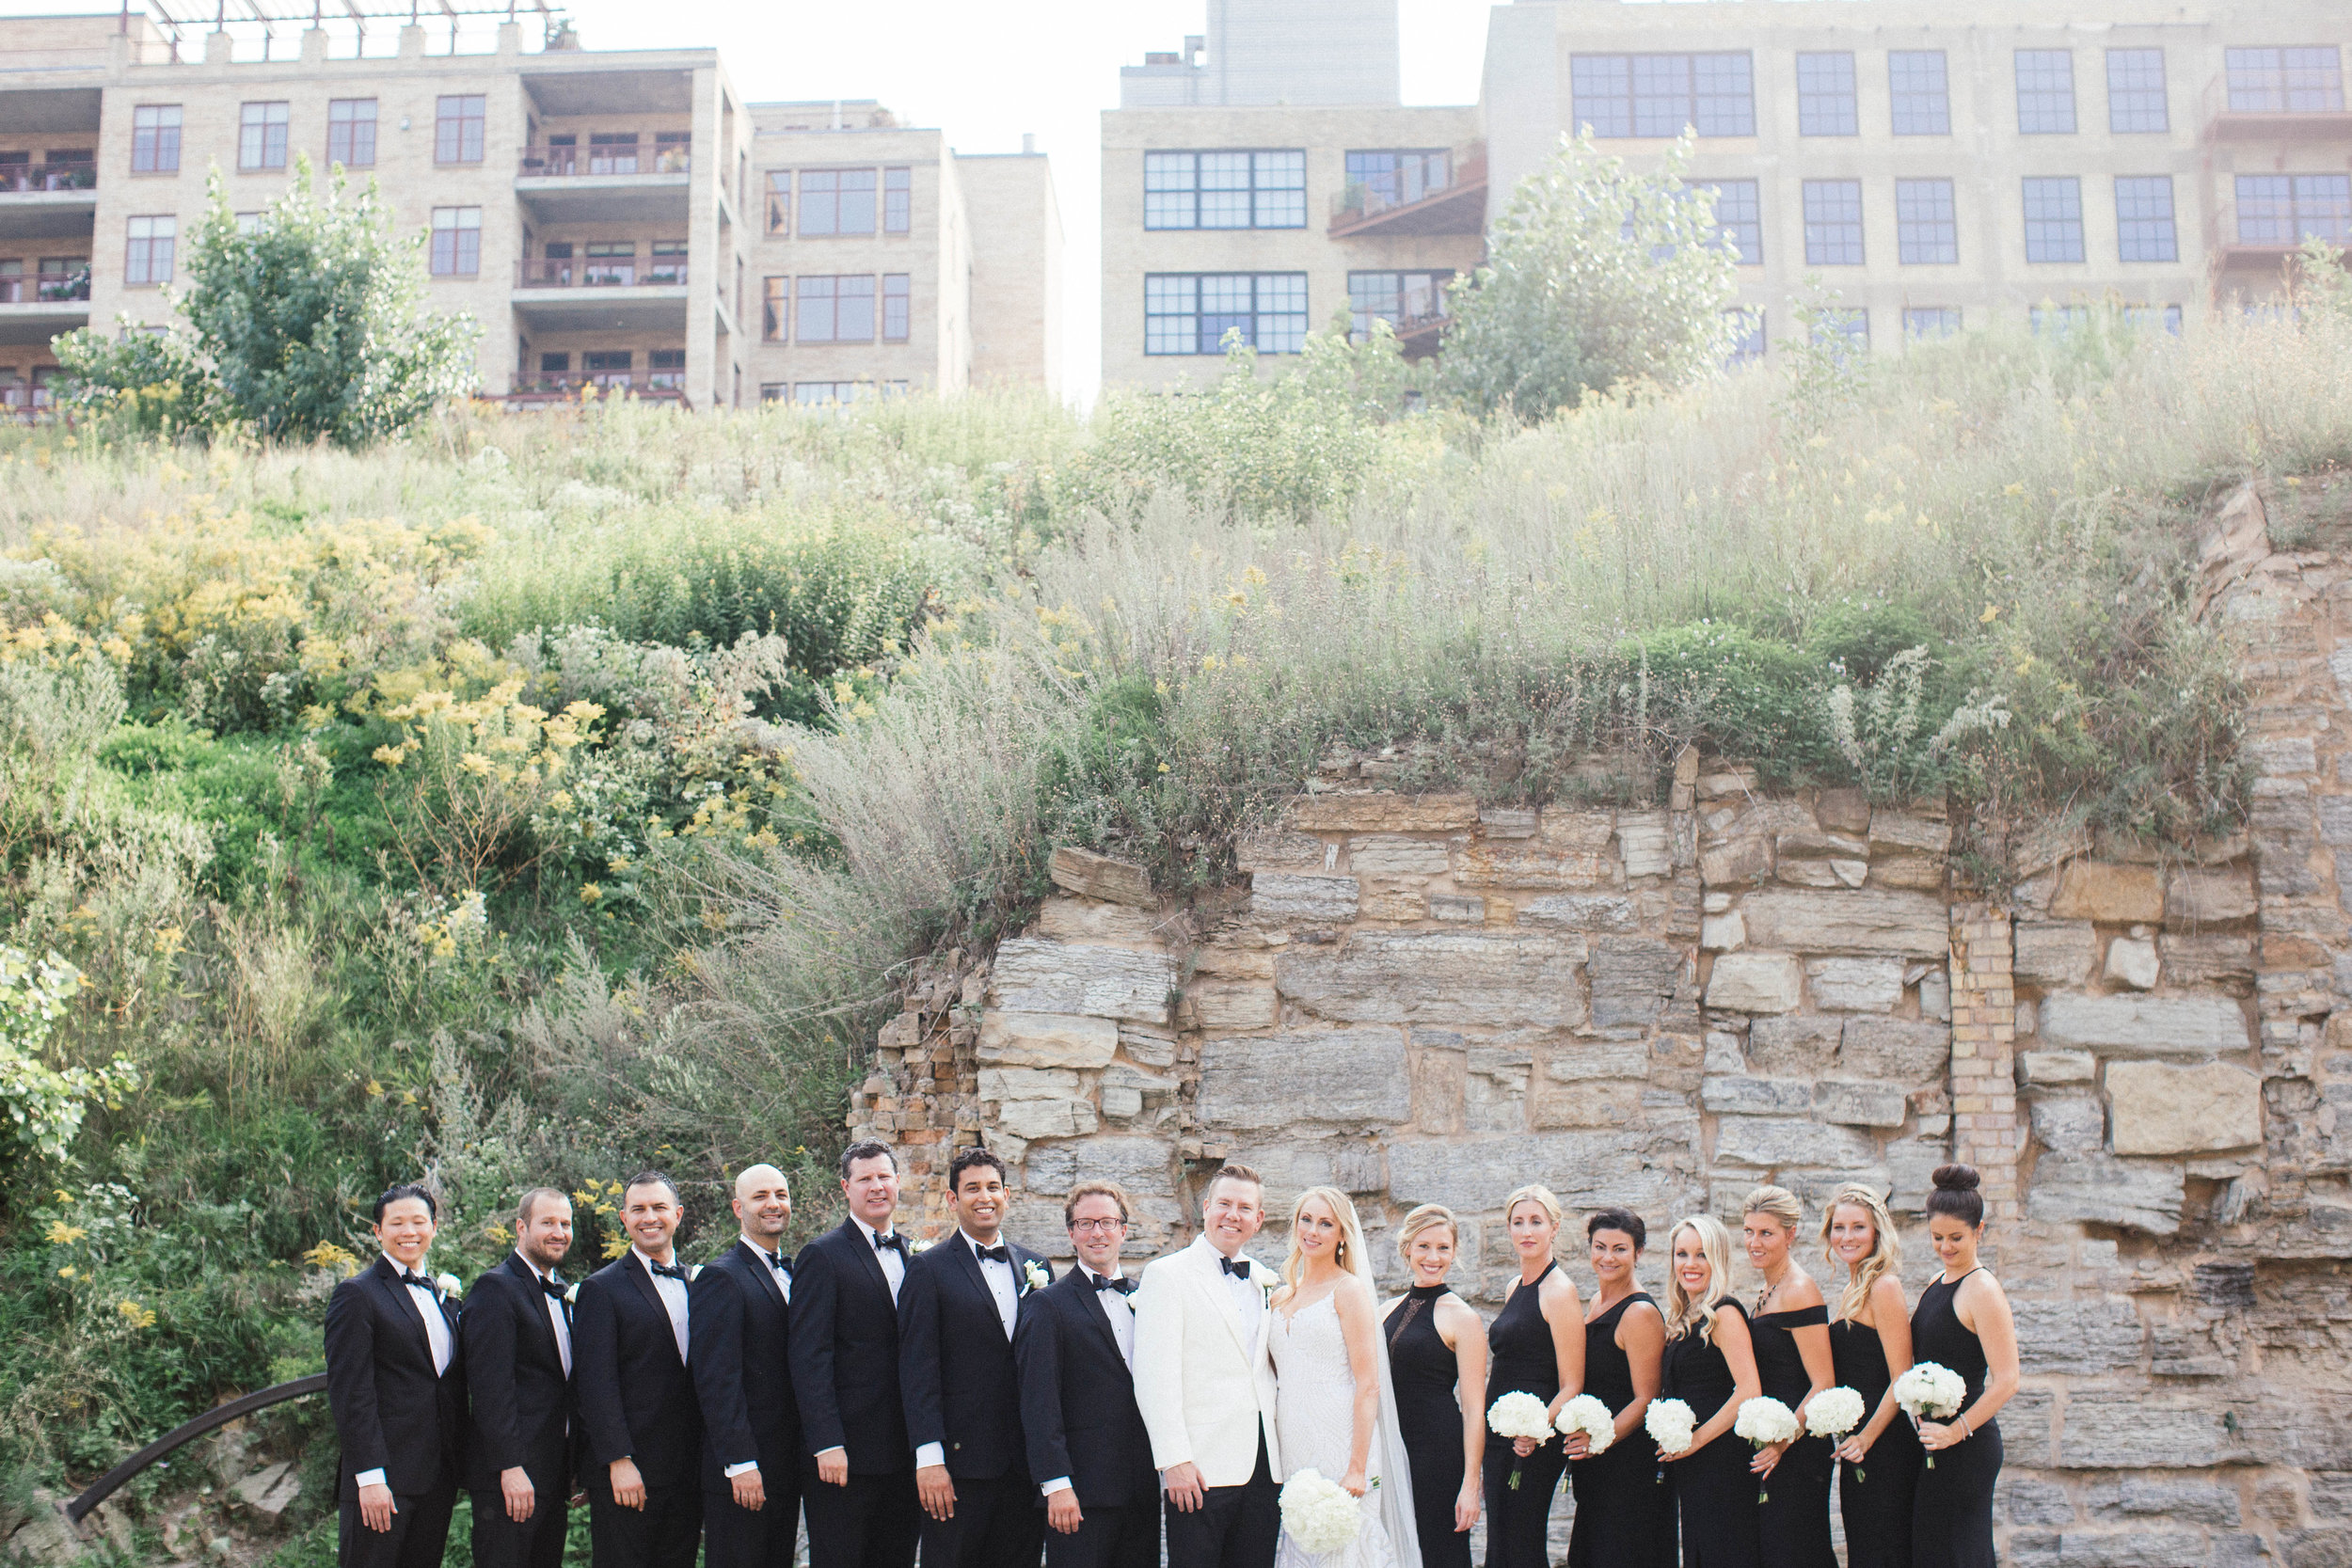 bridesmaids photo at the mill city ruins for a Guthrie wedding